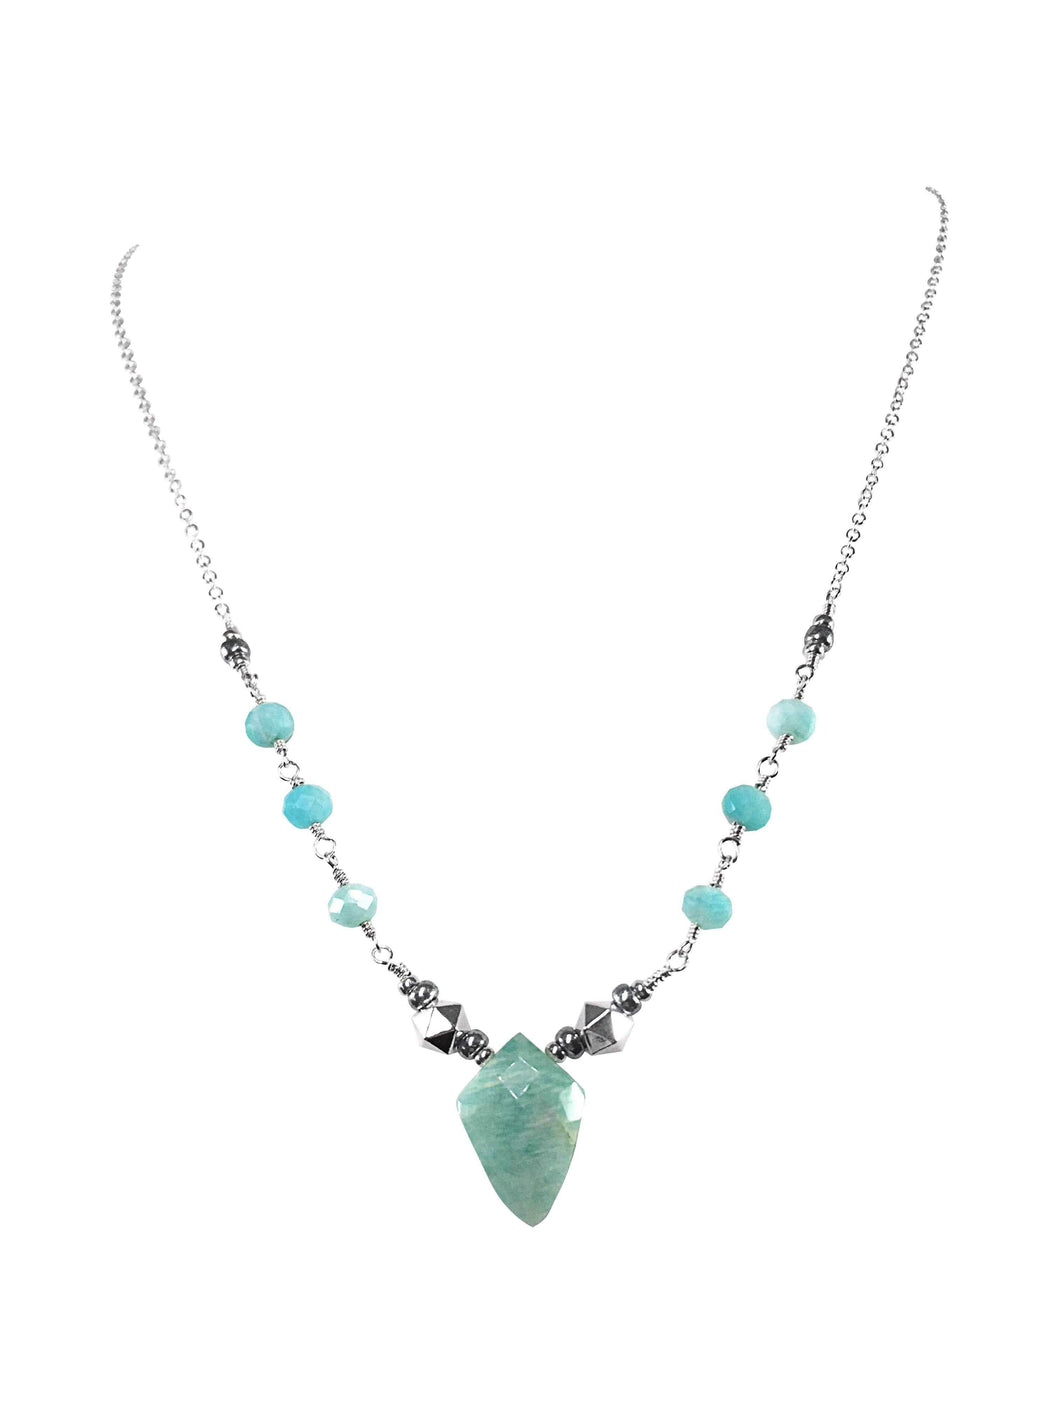 Handmade Amazonite Gemstone Sterling Silver Necklace